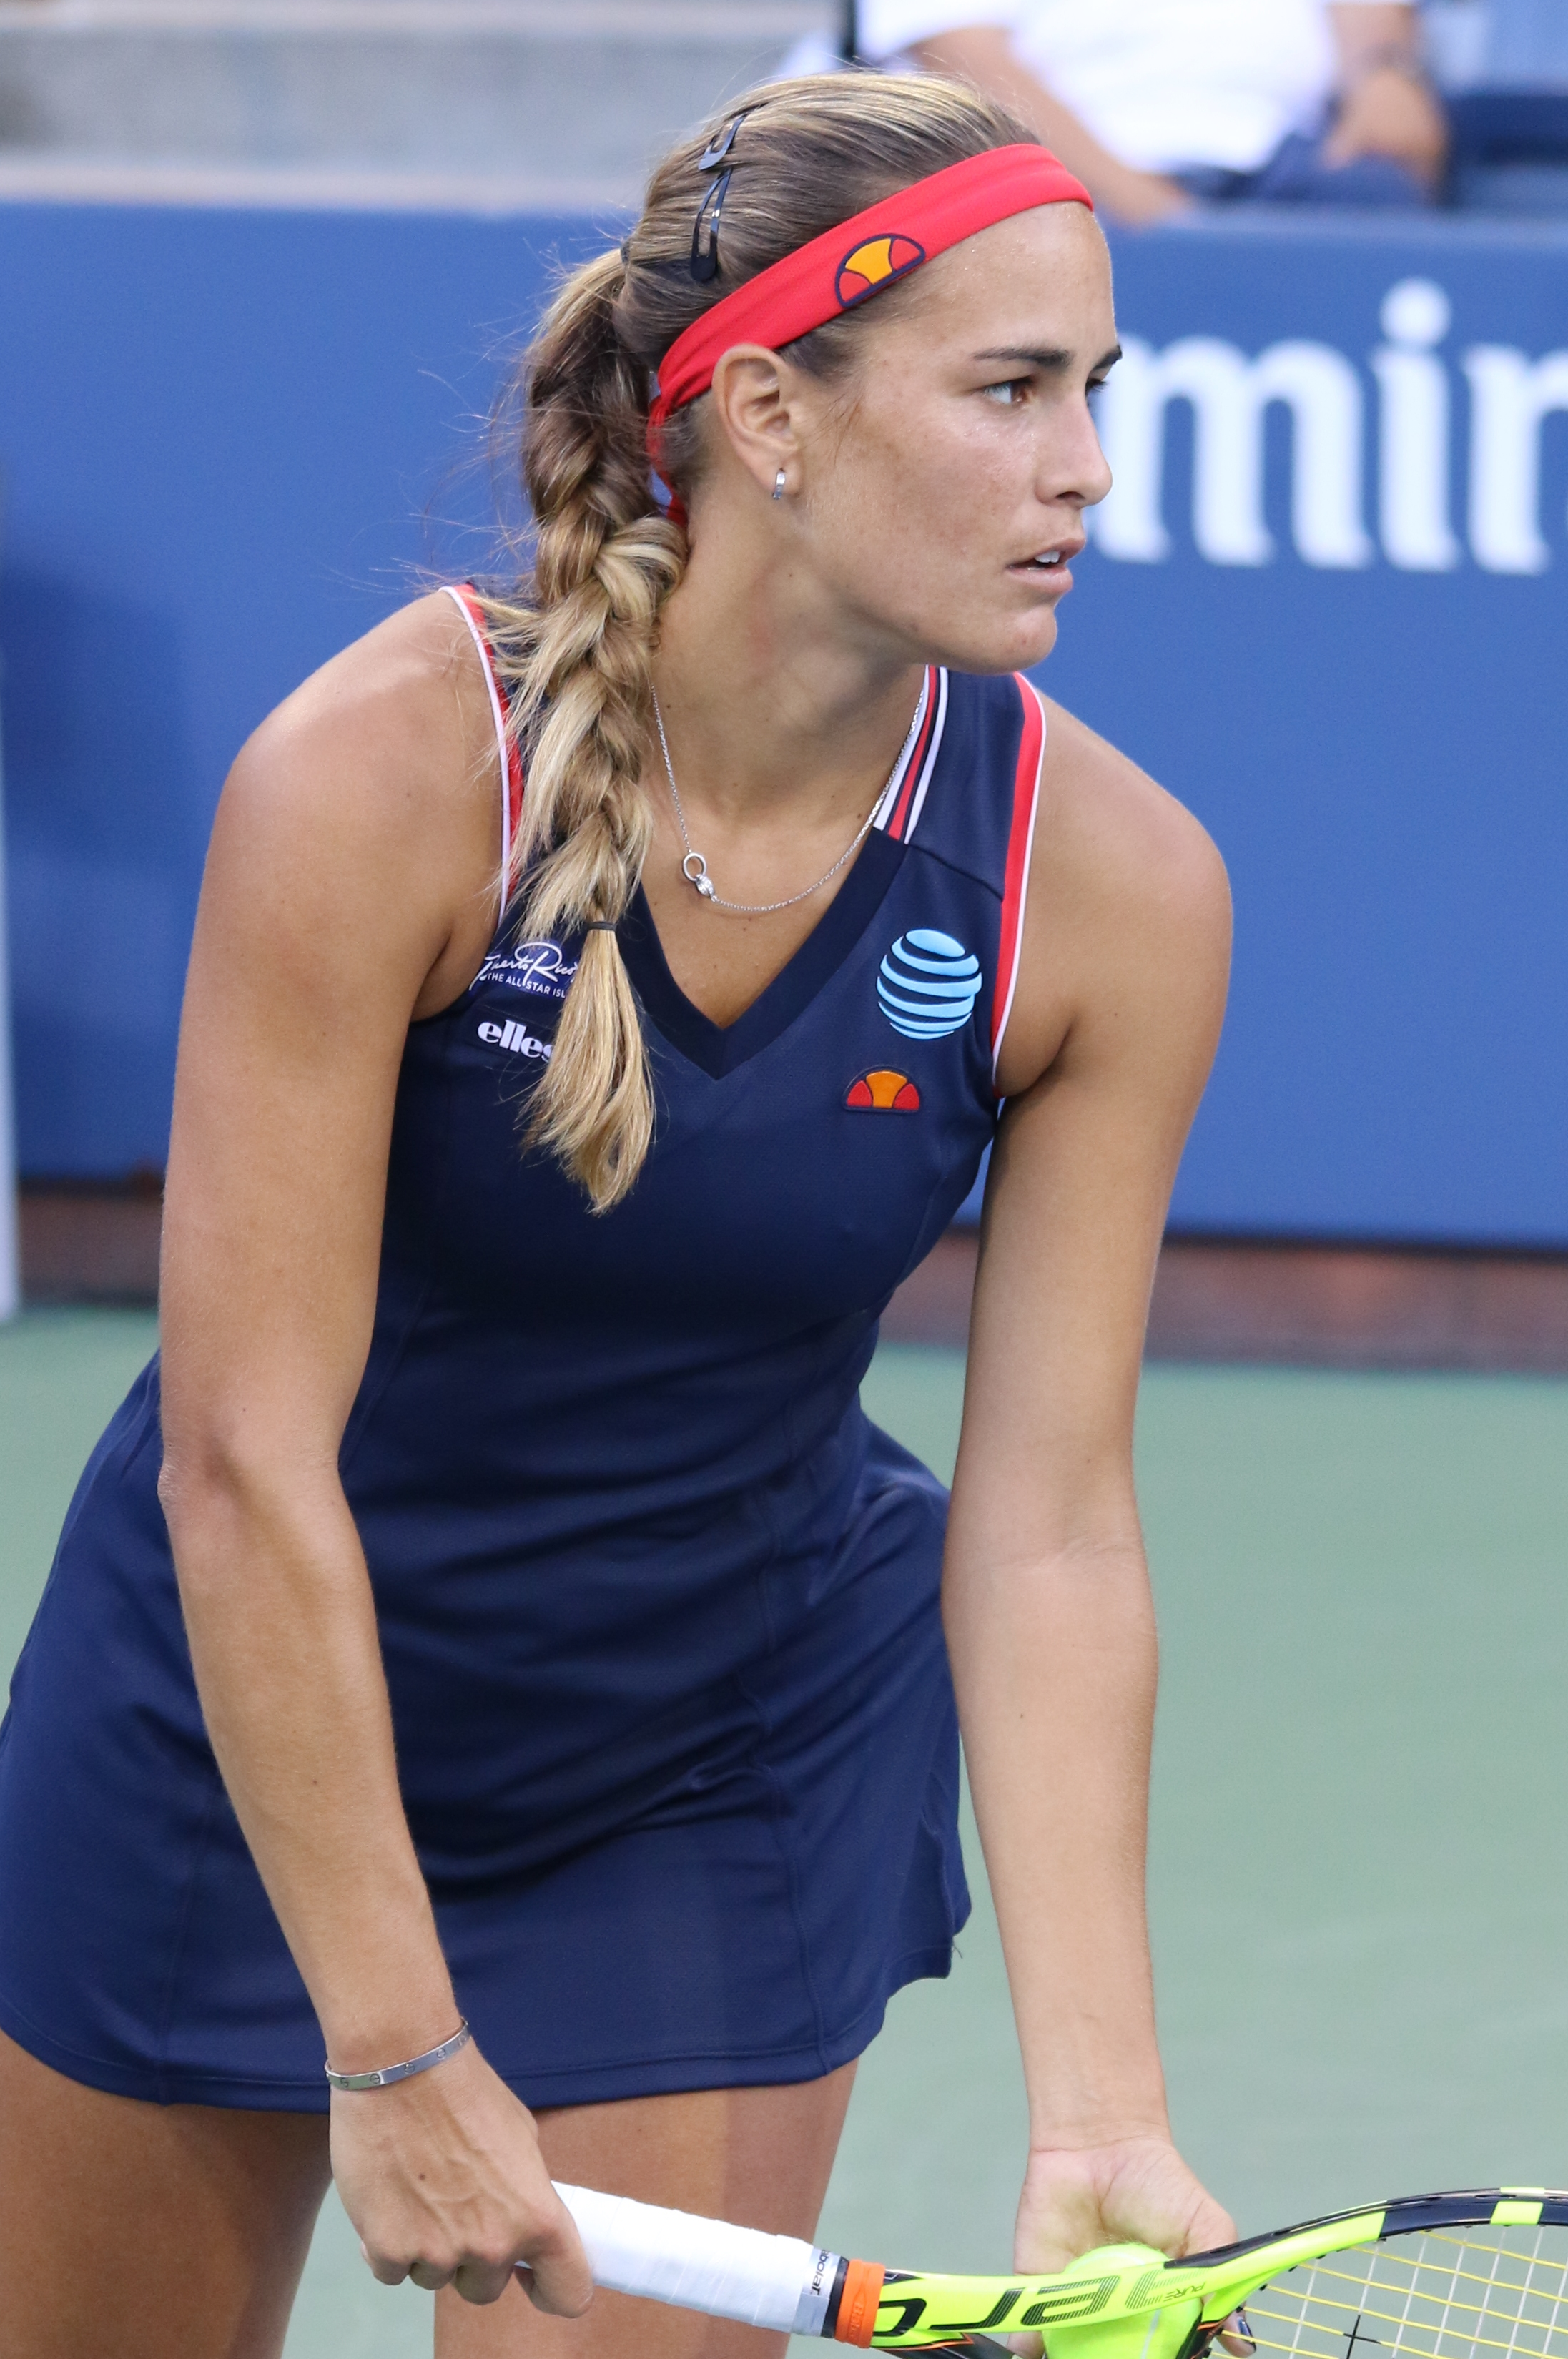 Puig at the 2016 US Open